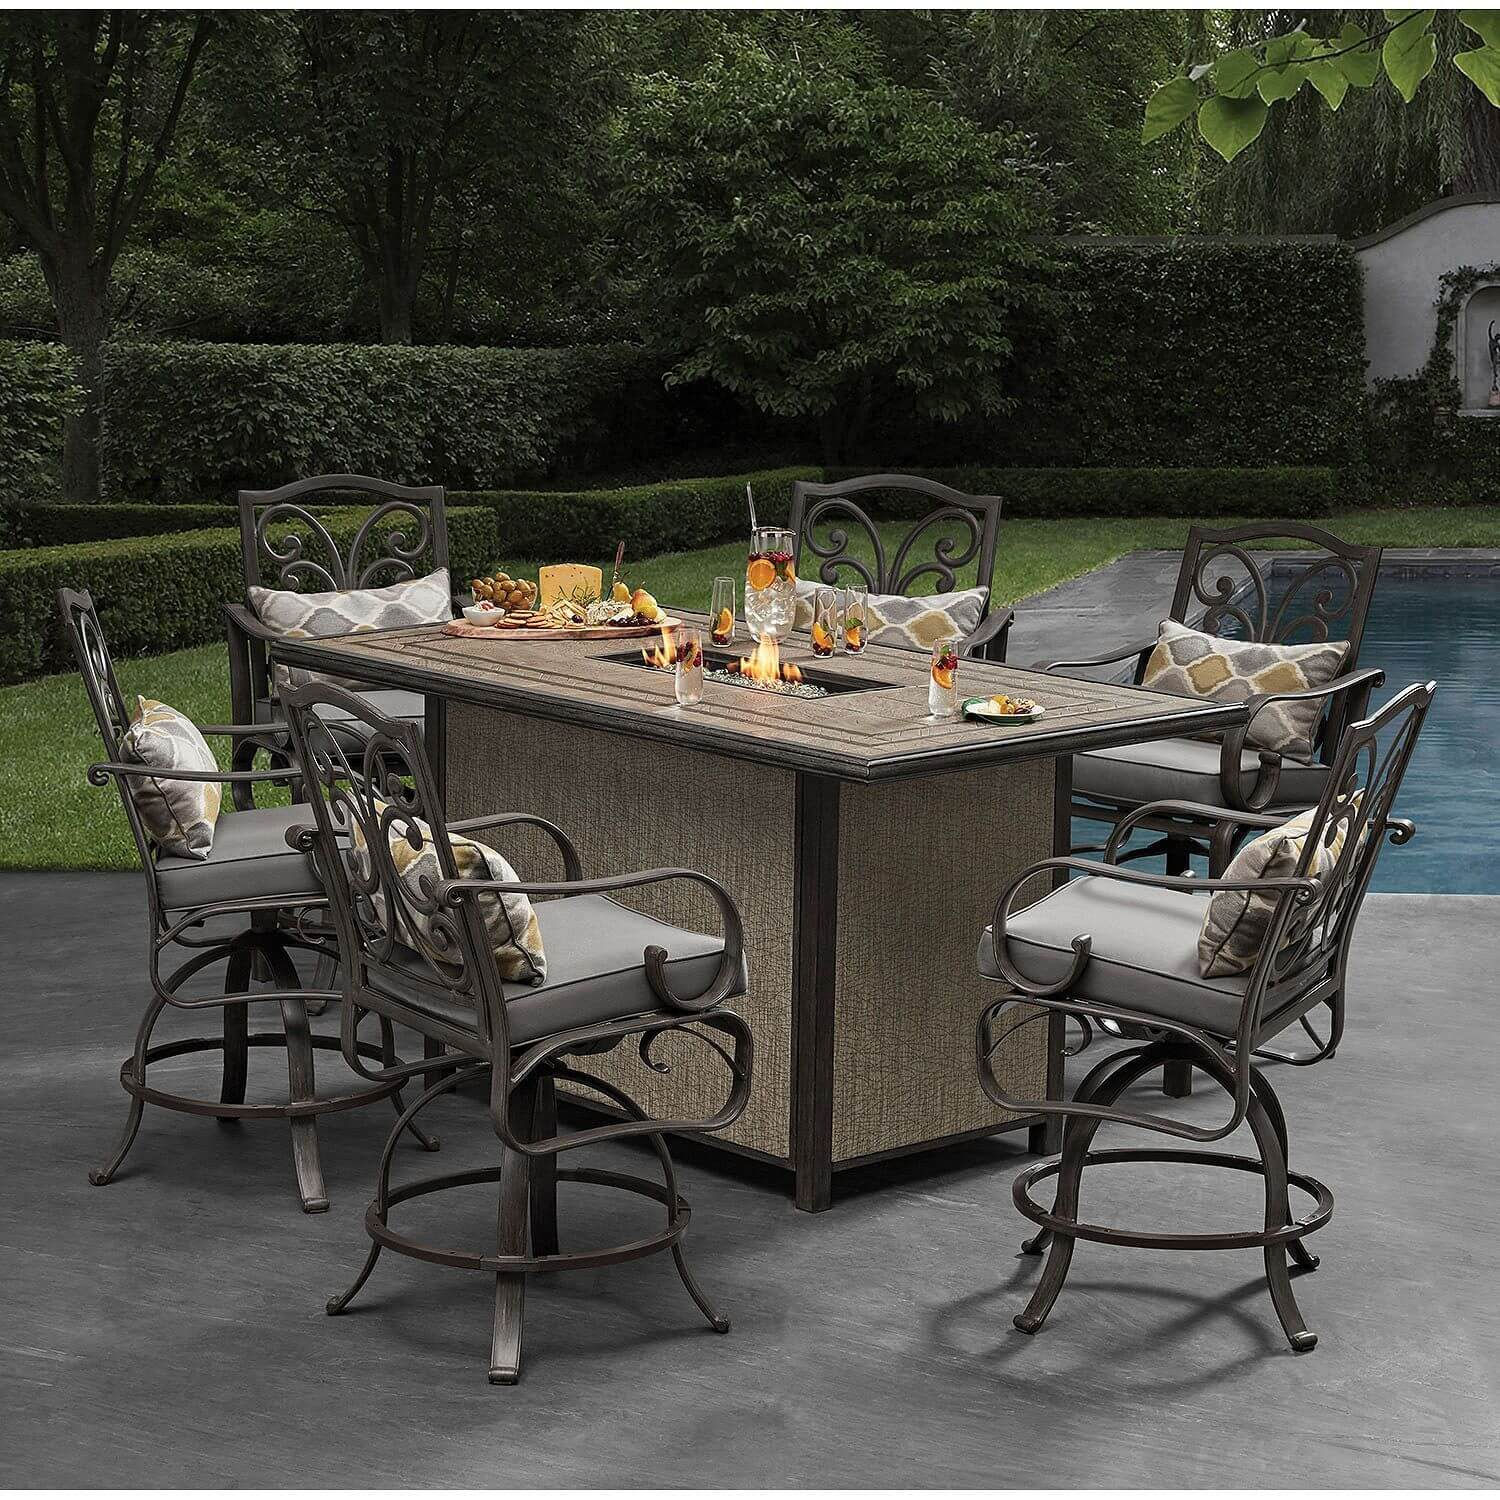 CHOOSING THE RIGHT BAR HEIGHT PATIO TABLE